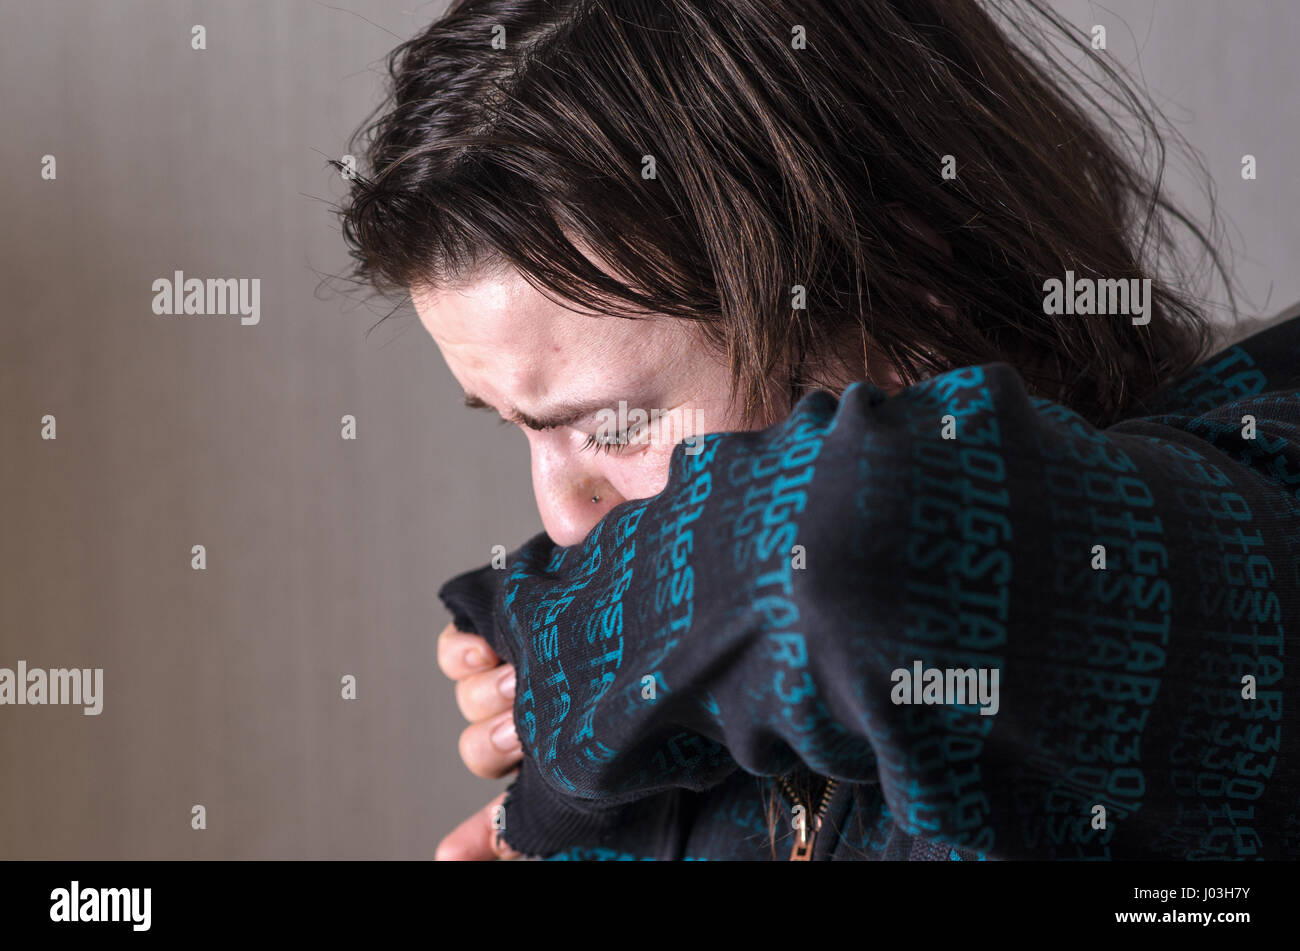 Girl crying in despair. Grief and real emotions. - Stock Image